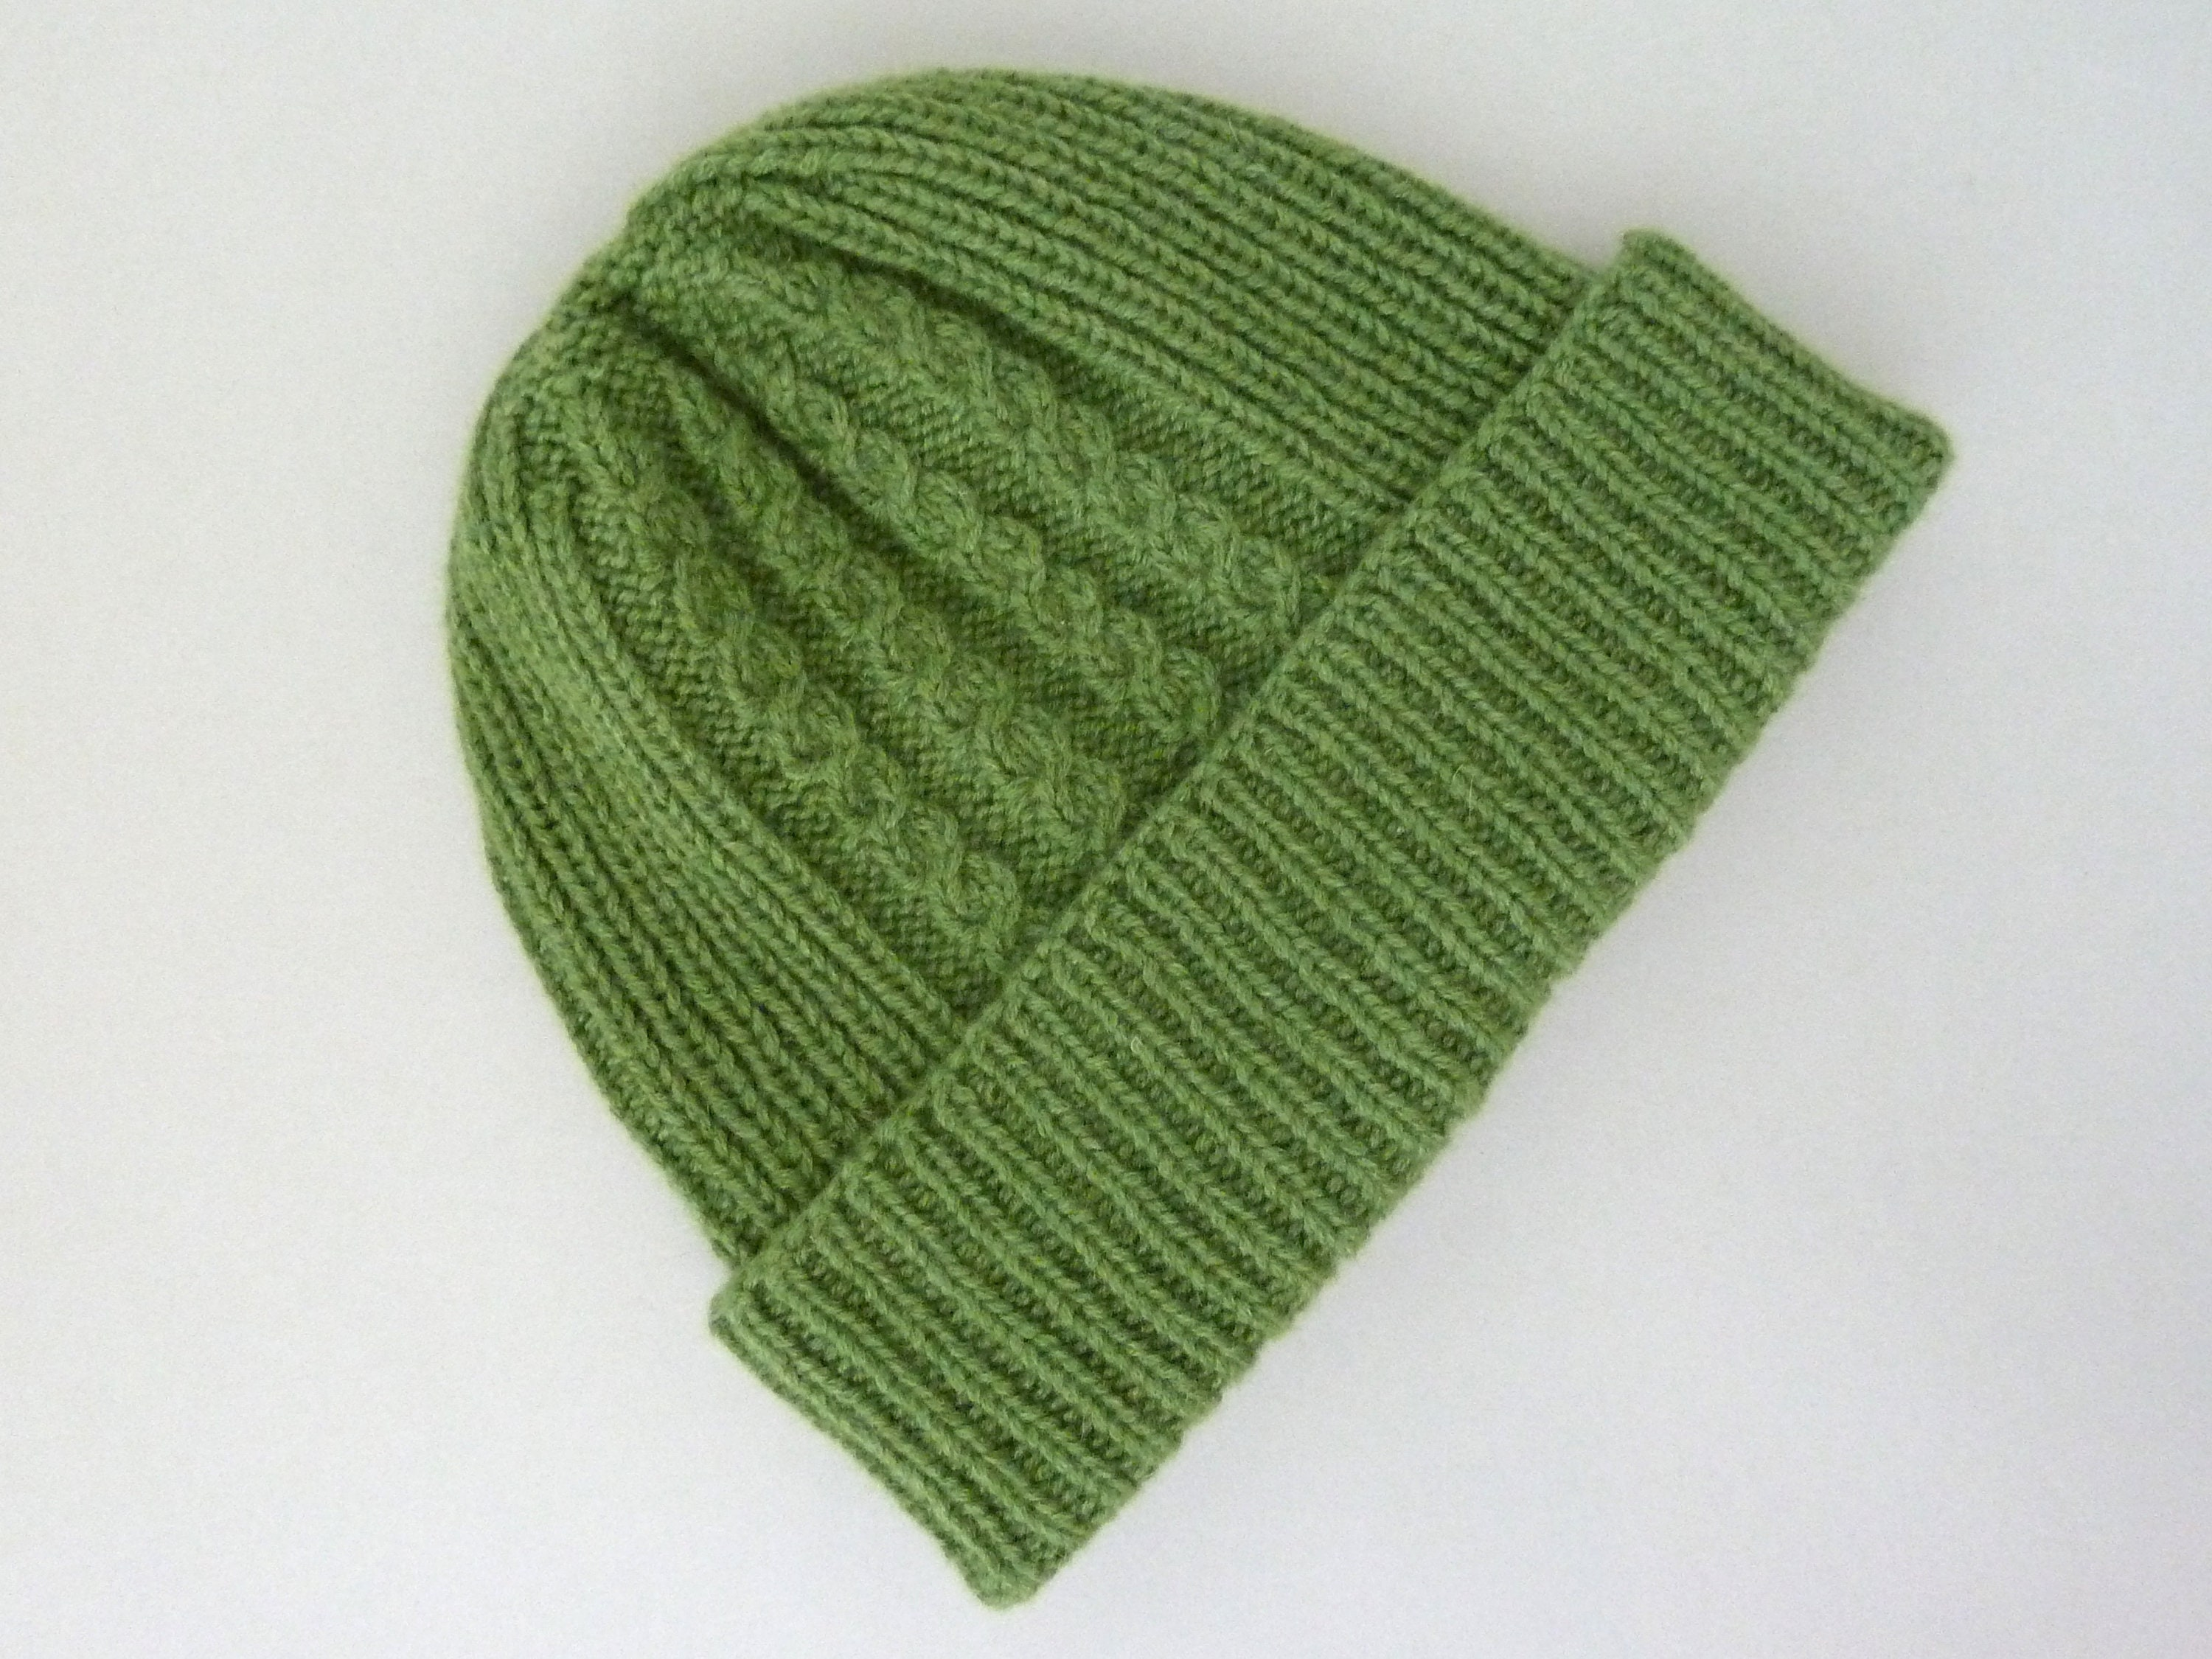 92c20d235ee3 100% cashmere hat for men. Hand knit ribbed beanie with cable